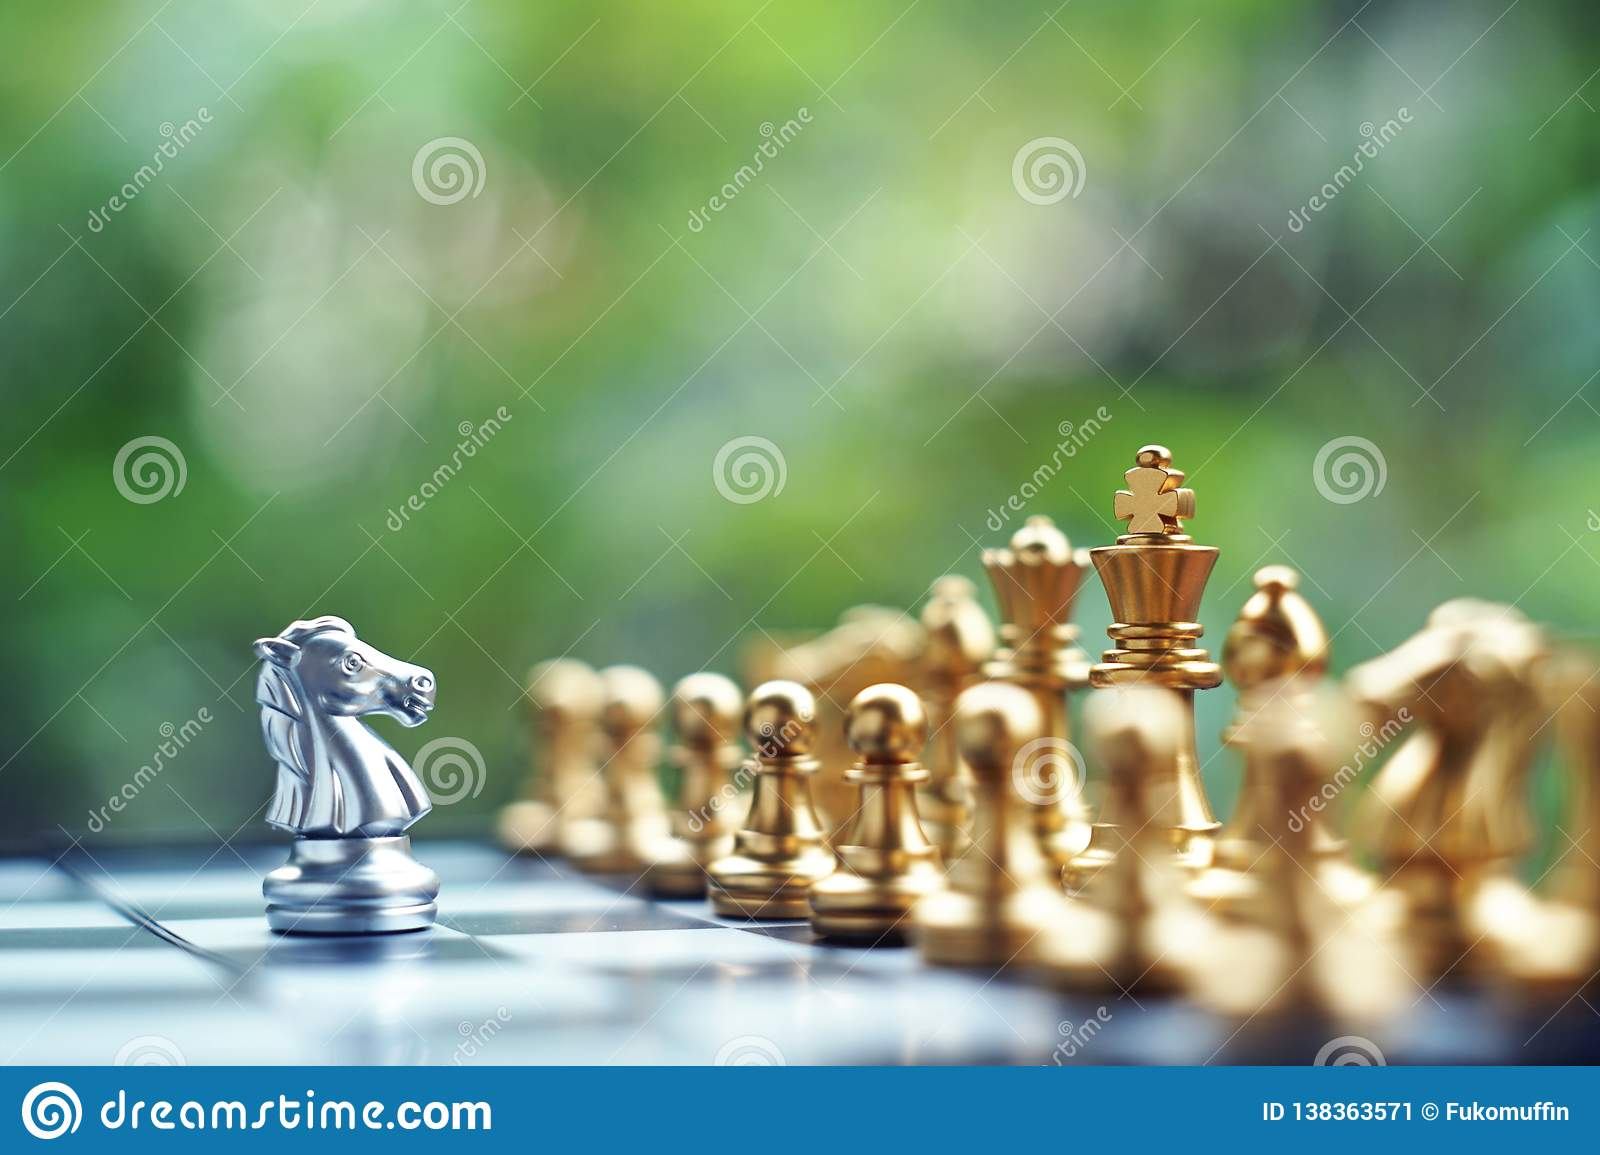 Chess board game. Fighting between silver and golden team. Business competitive and strategy planning concept.